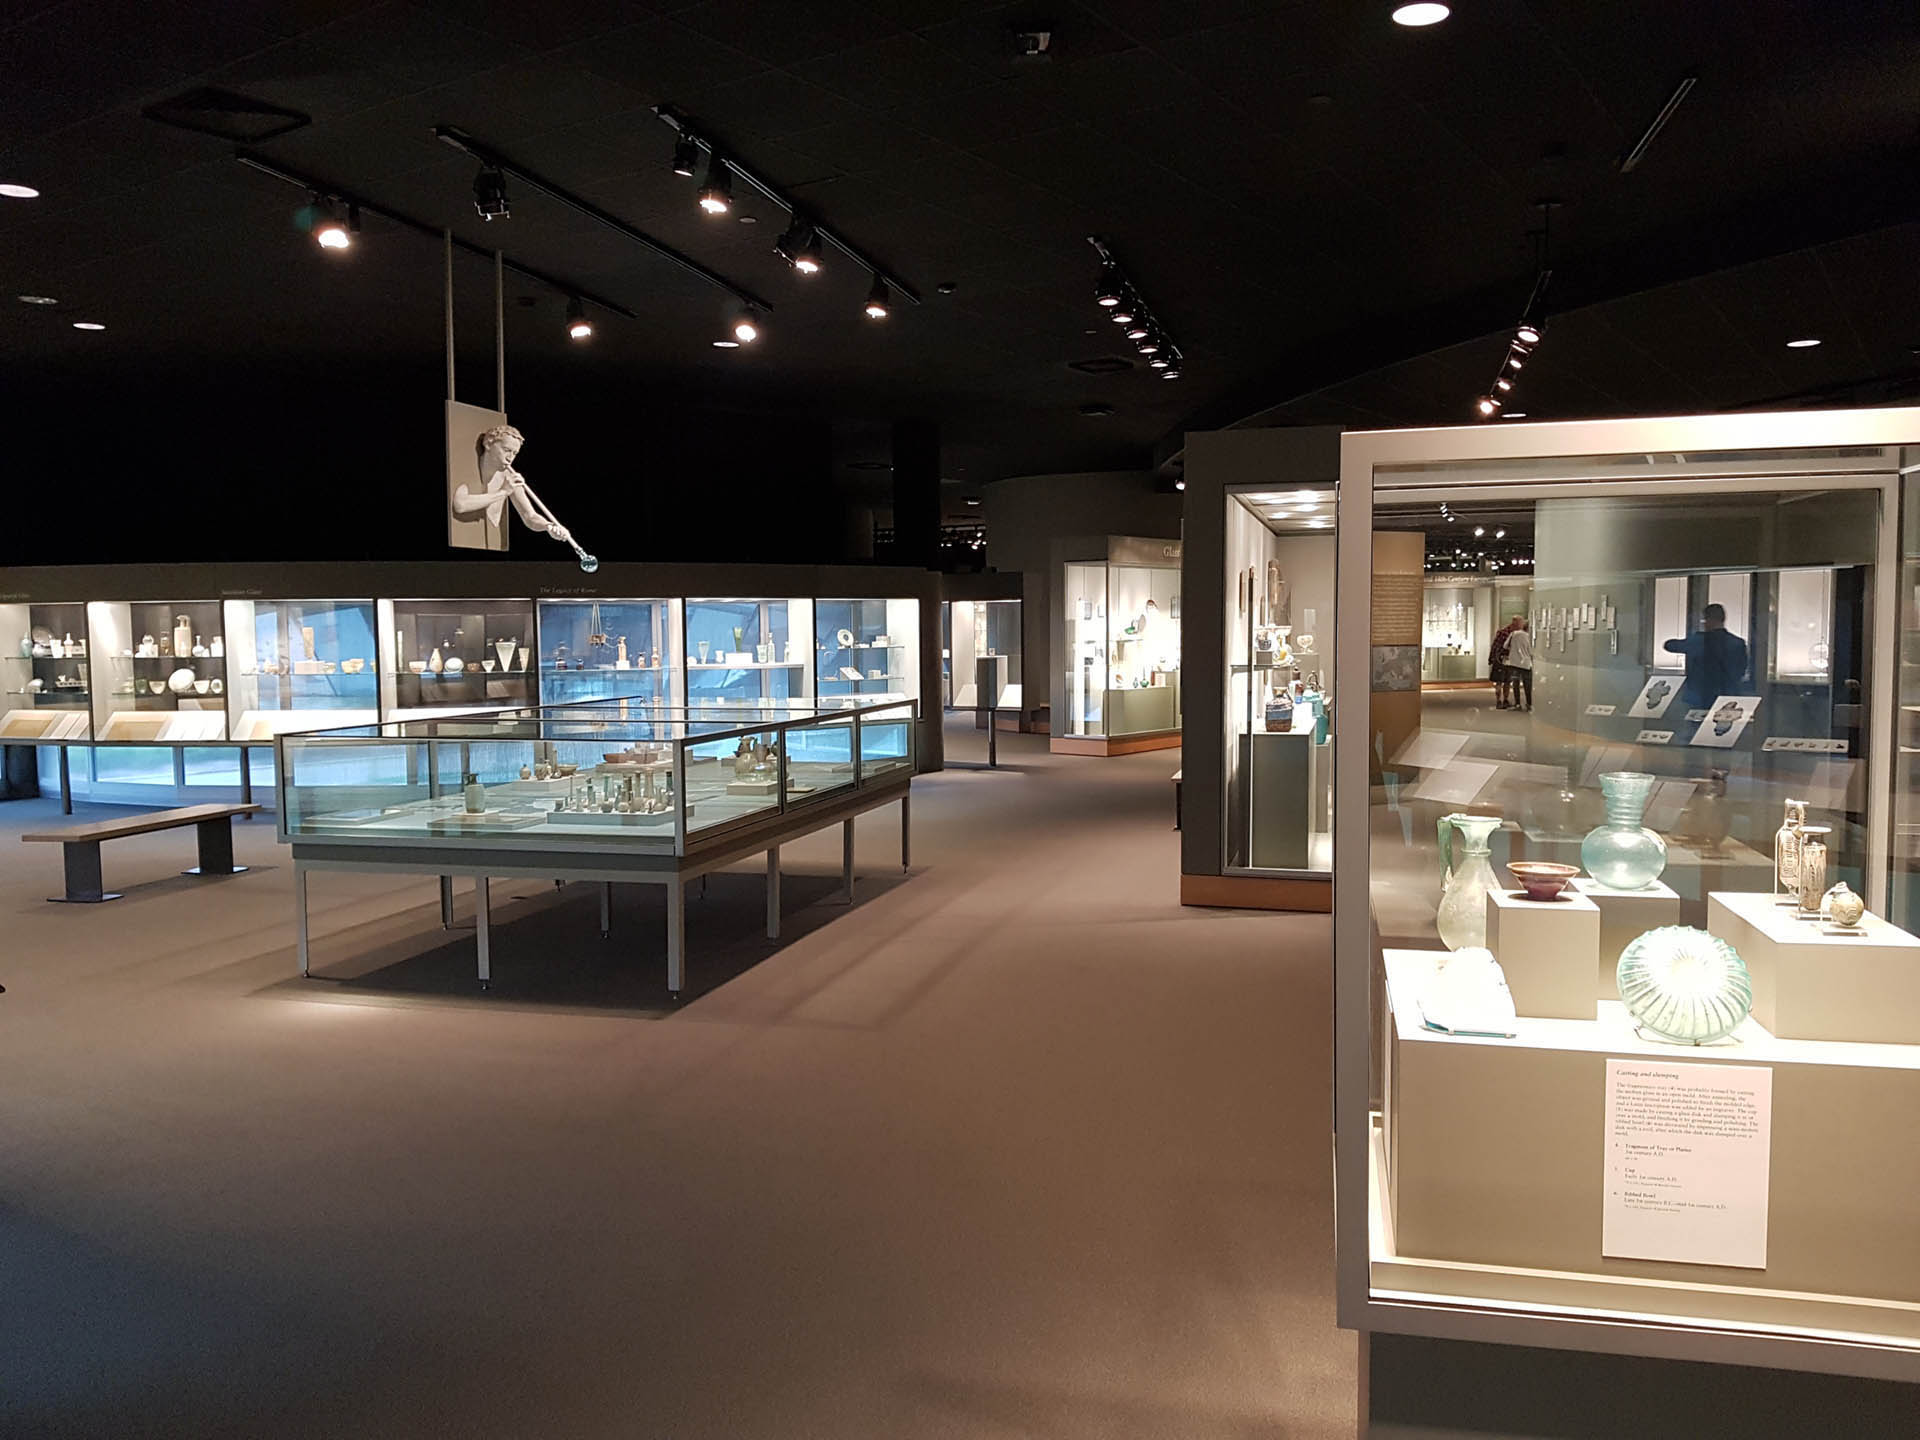 Ancient galleries at the Corning Museum of Glass